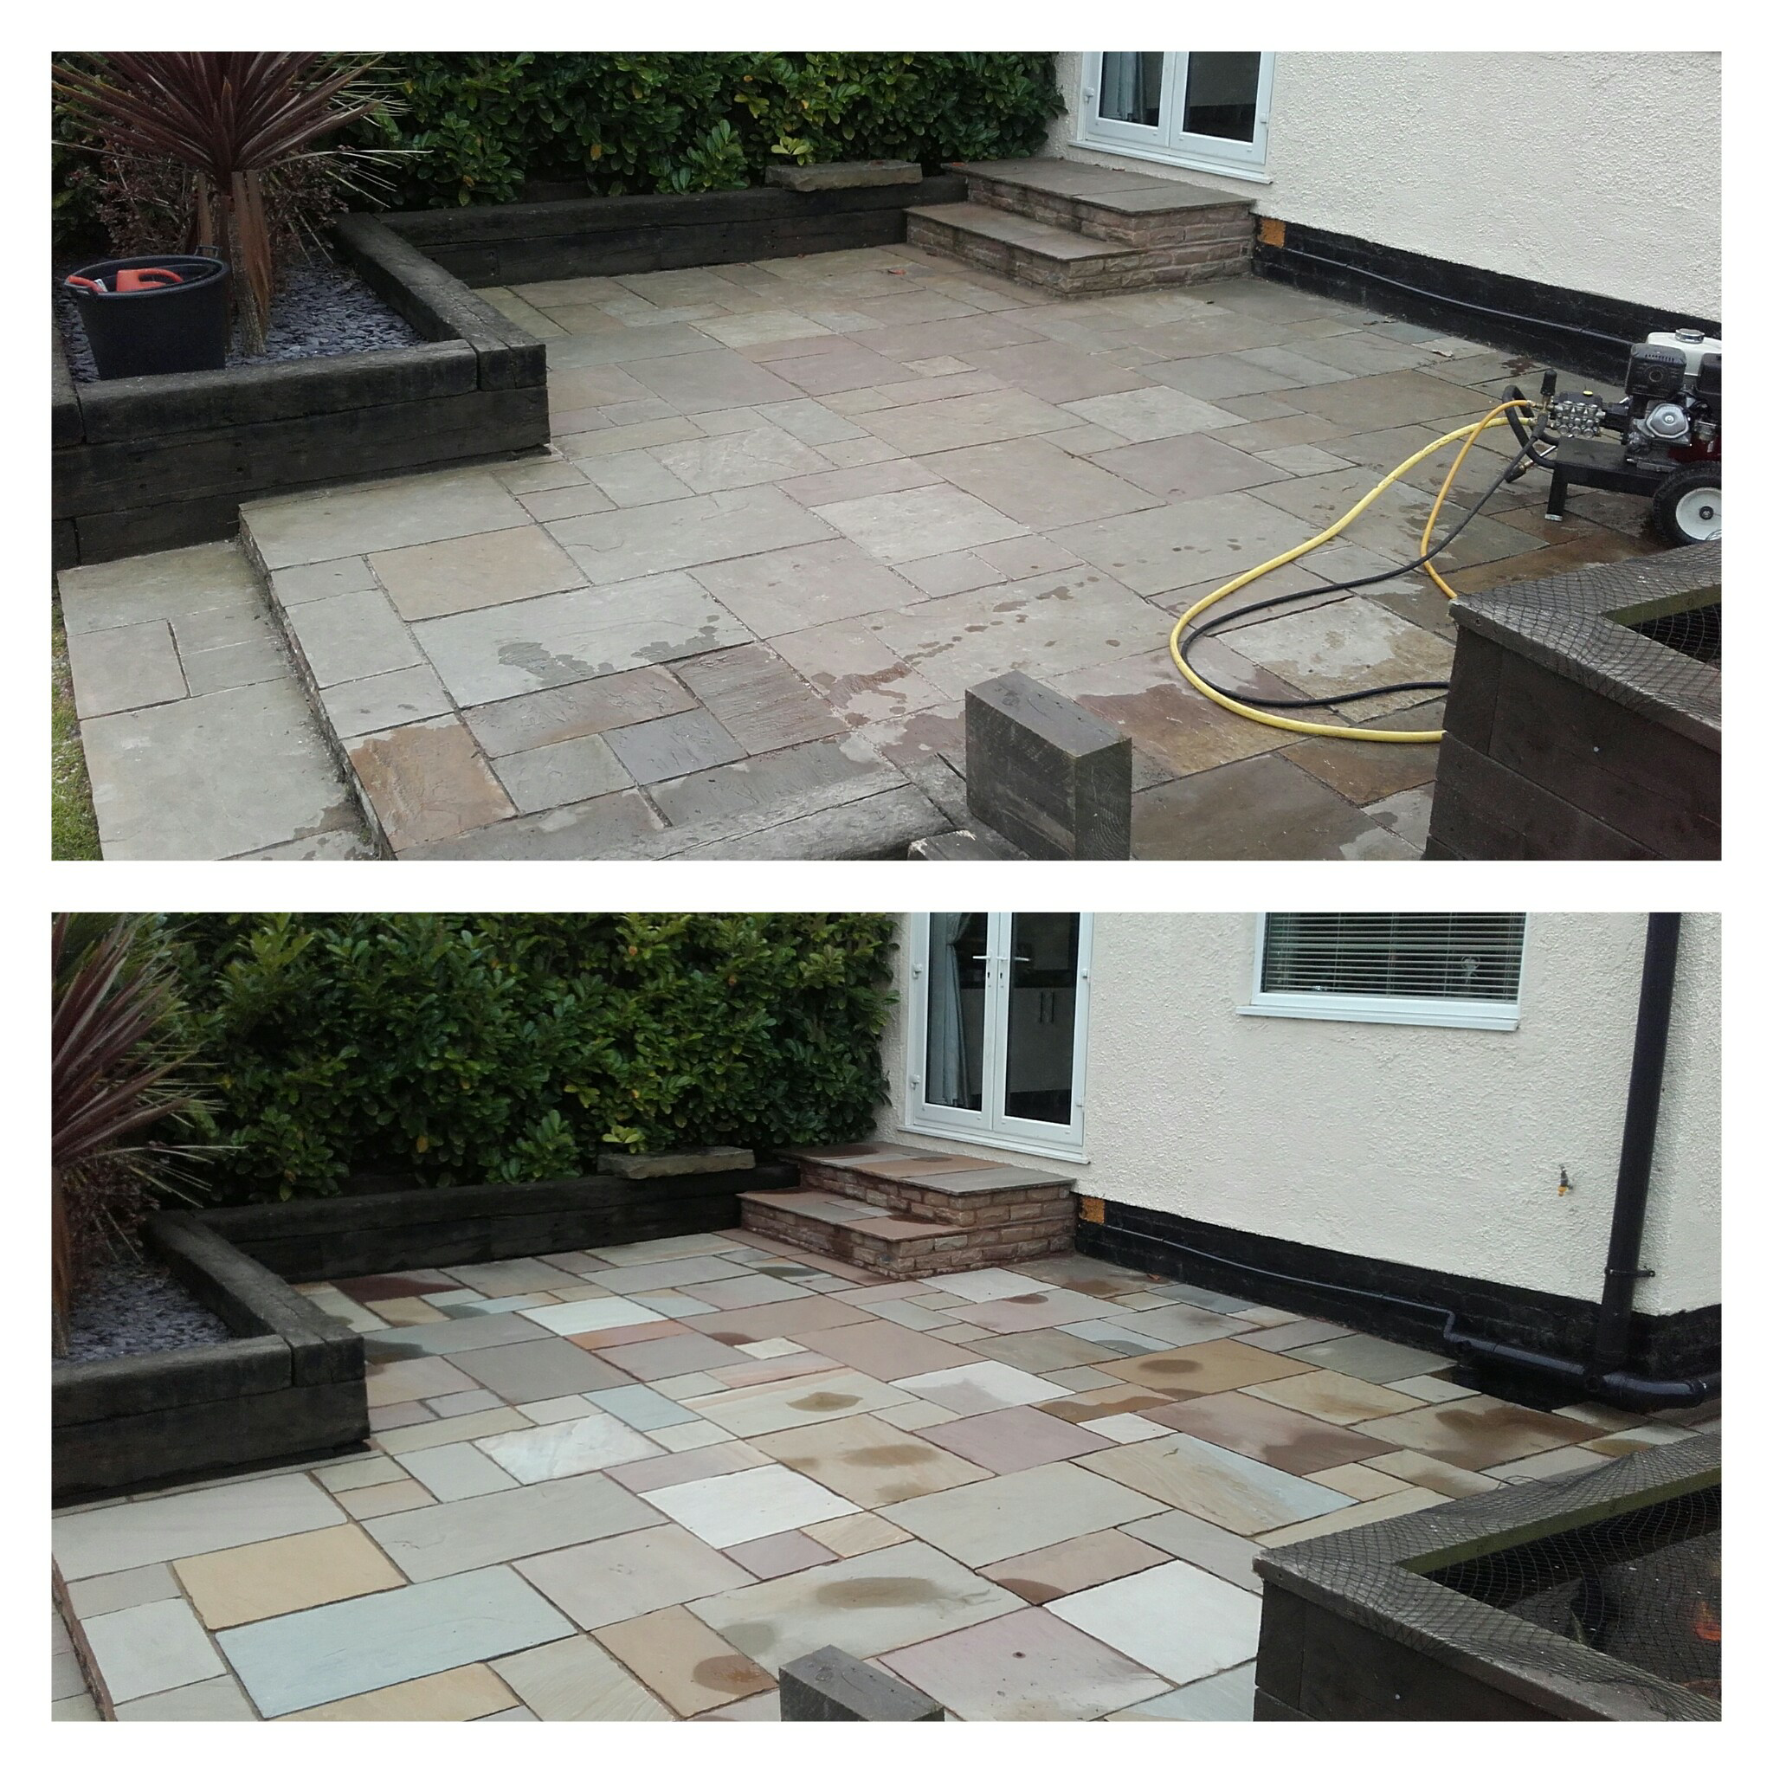 Indian-Sandstone-Patio-Cleaning-2 Indian Sandstone Patio Cleaning 2